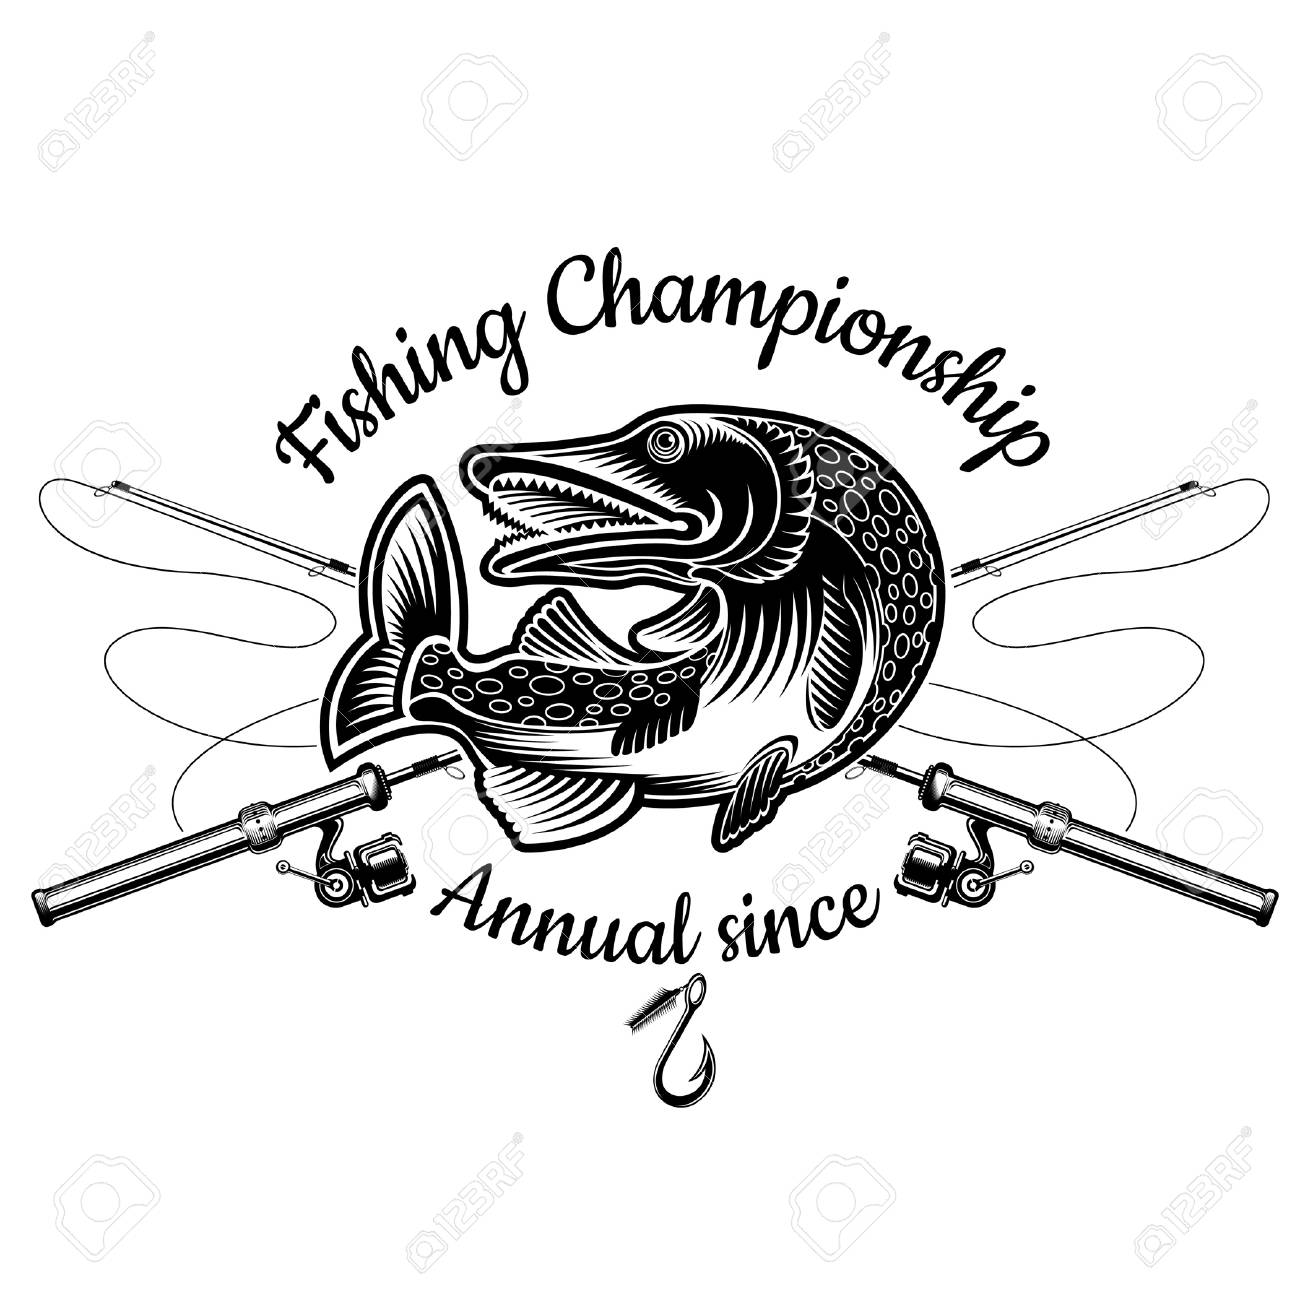 Pike Fish Bend With Crossed Fishing Rod In Engrving Style Logo Royalty Free Cliparts Vectors And Stock Illustration Image 121504961